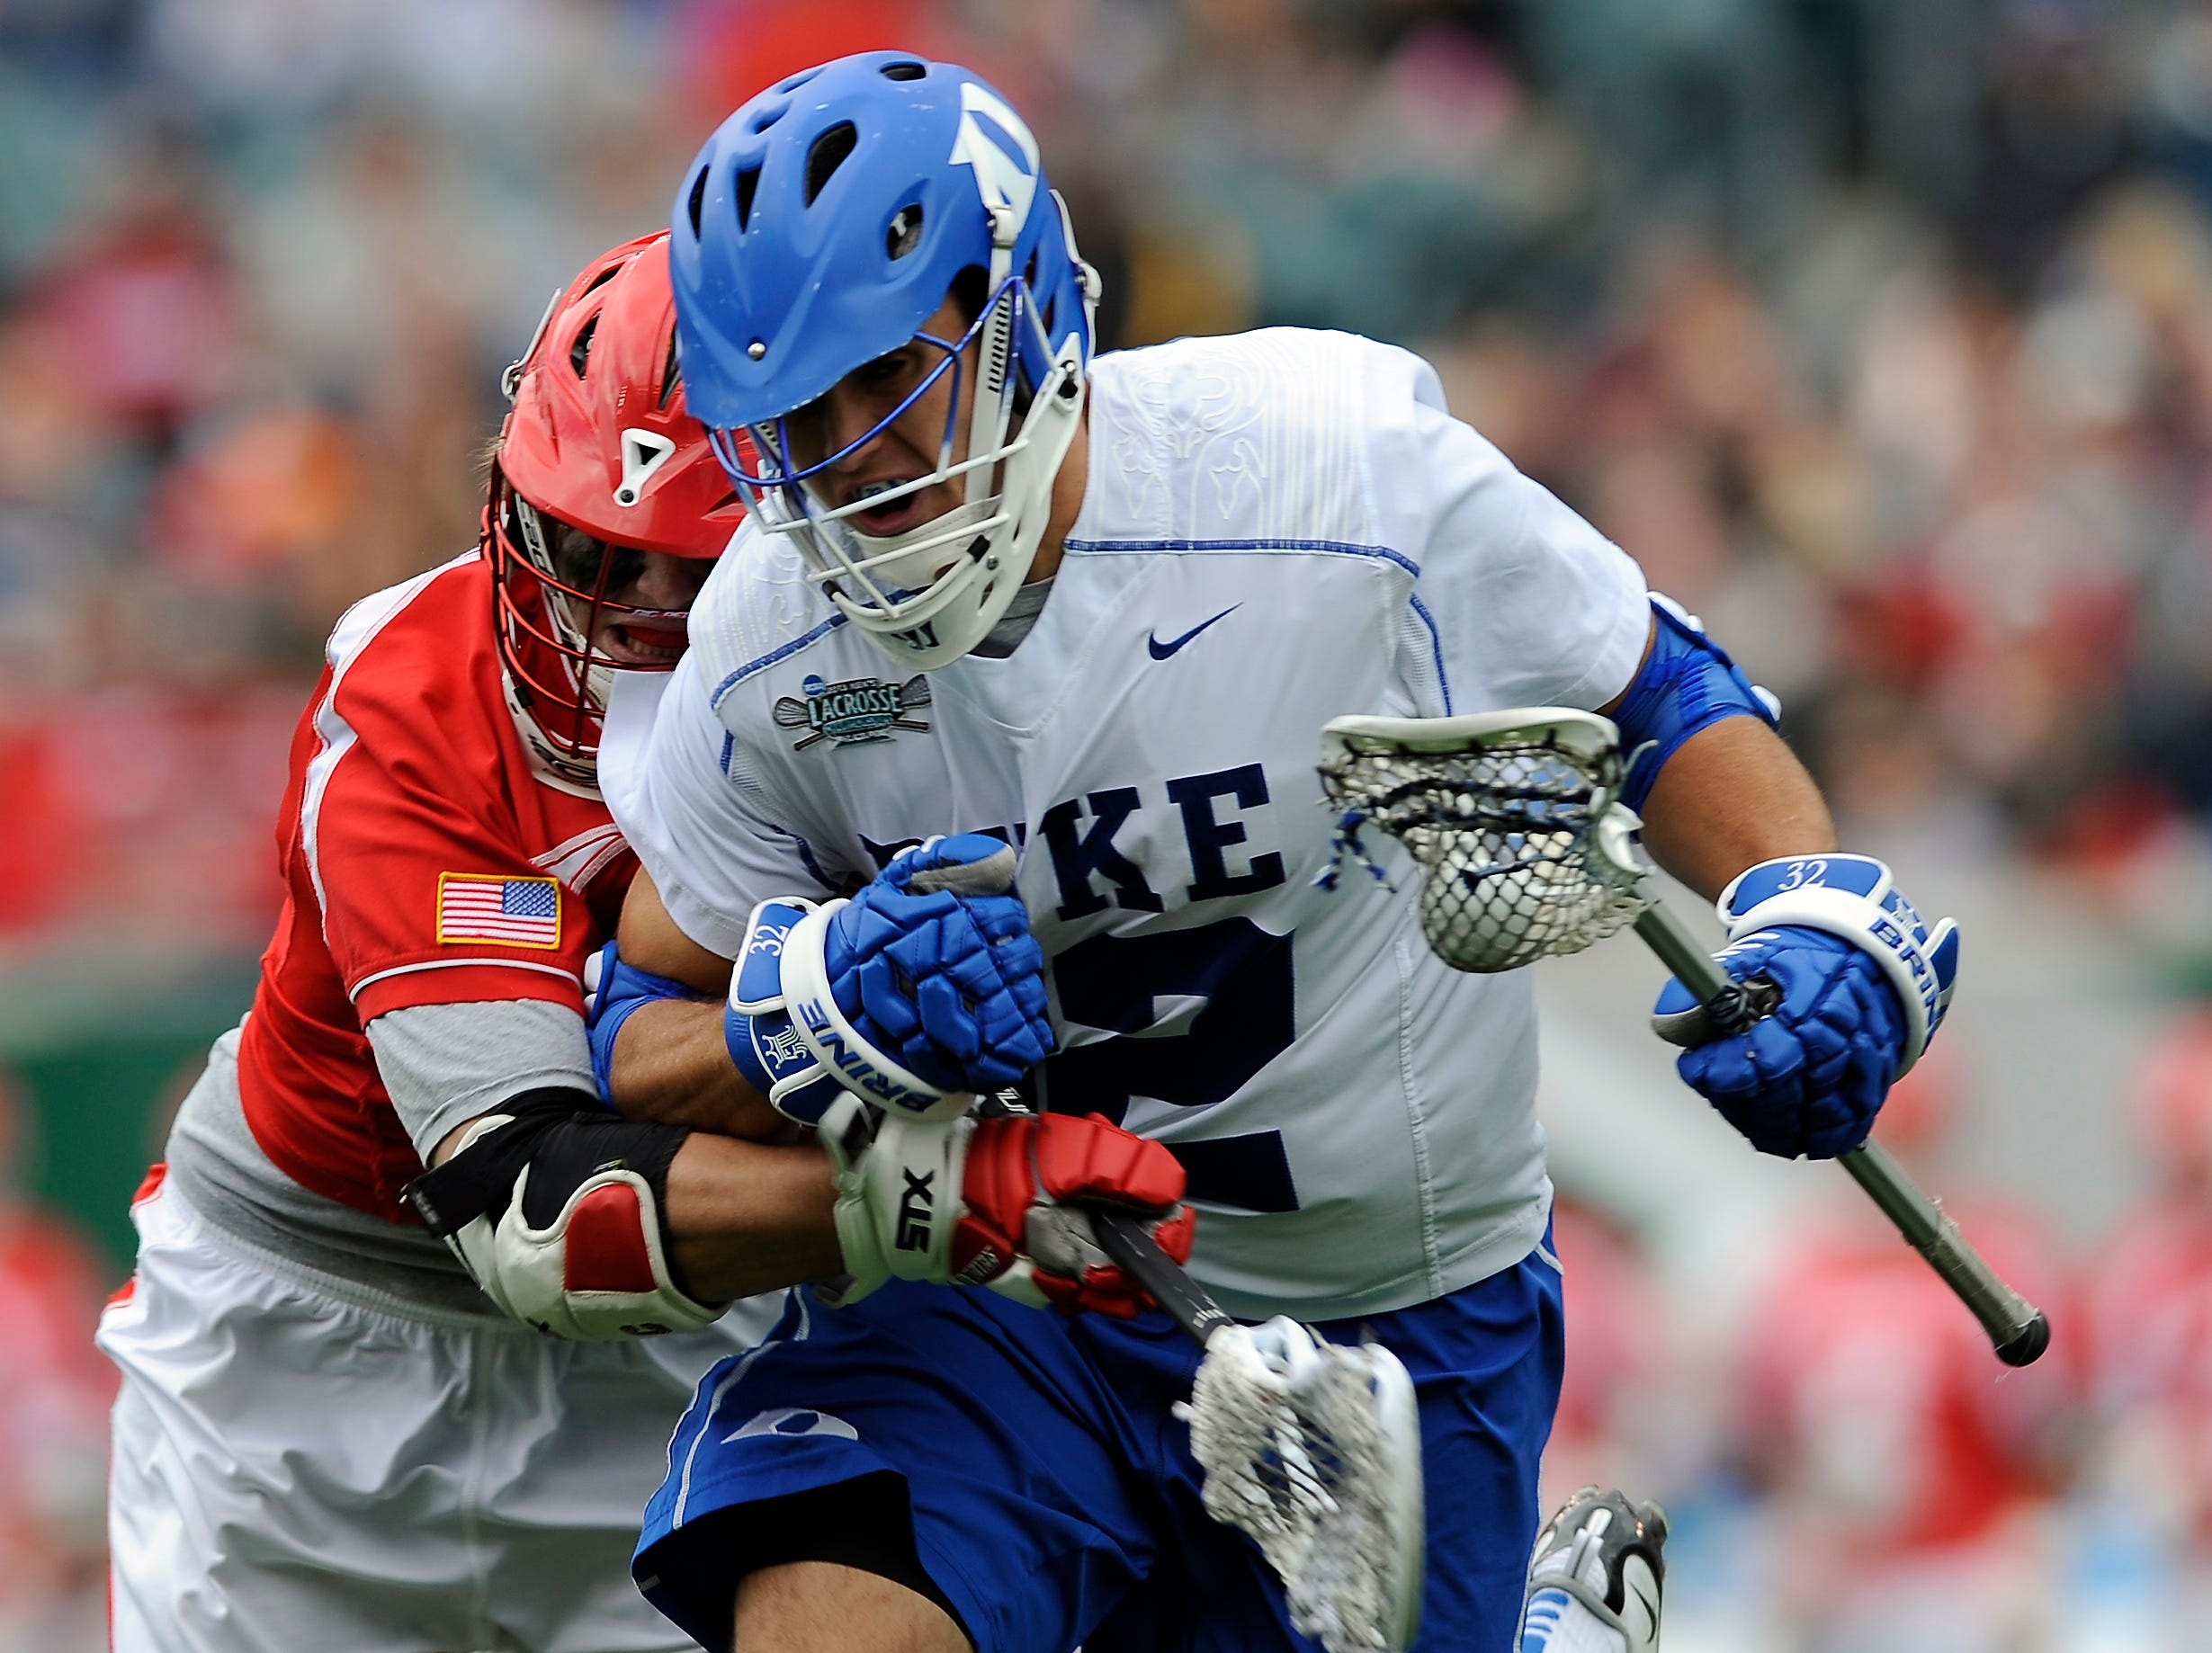 Duke's Greg DeLuca, right, drives past Cornell's Connor Buczek during the first half of an NCAA division 1 semifinal lacrosse game on Saturday, May 25, 2013, in Philadelphia.